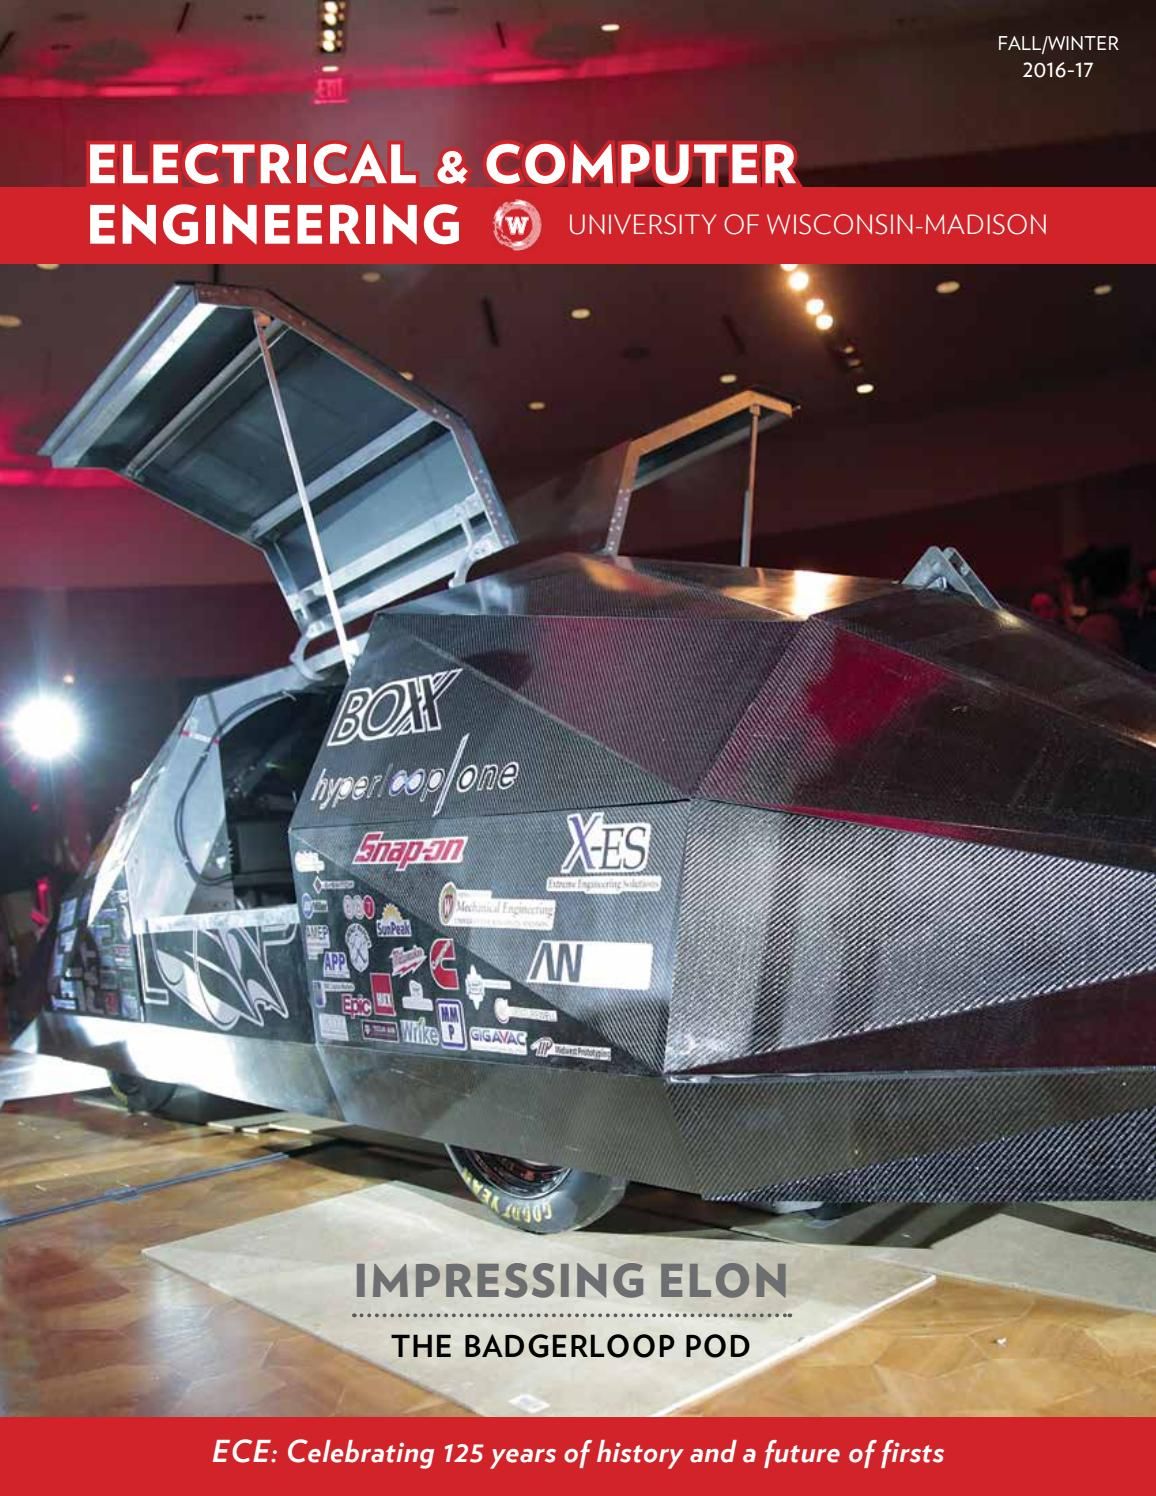 Uw Madison Electrical And Computer Engineering News Fall 2016 By Todd Schematics College Of Issuu